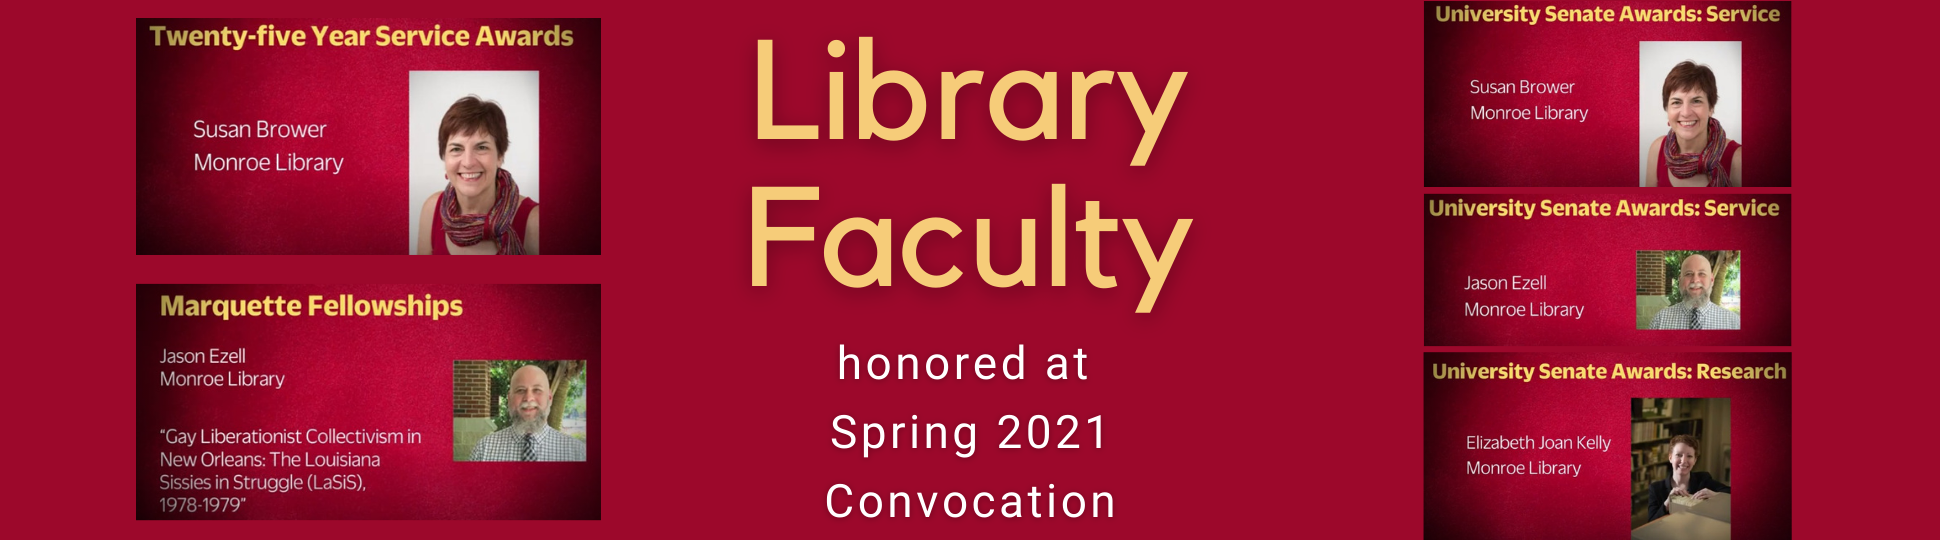 Library Faculty honored at Spring 2021 Convocation